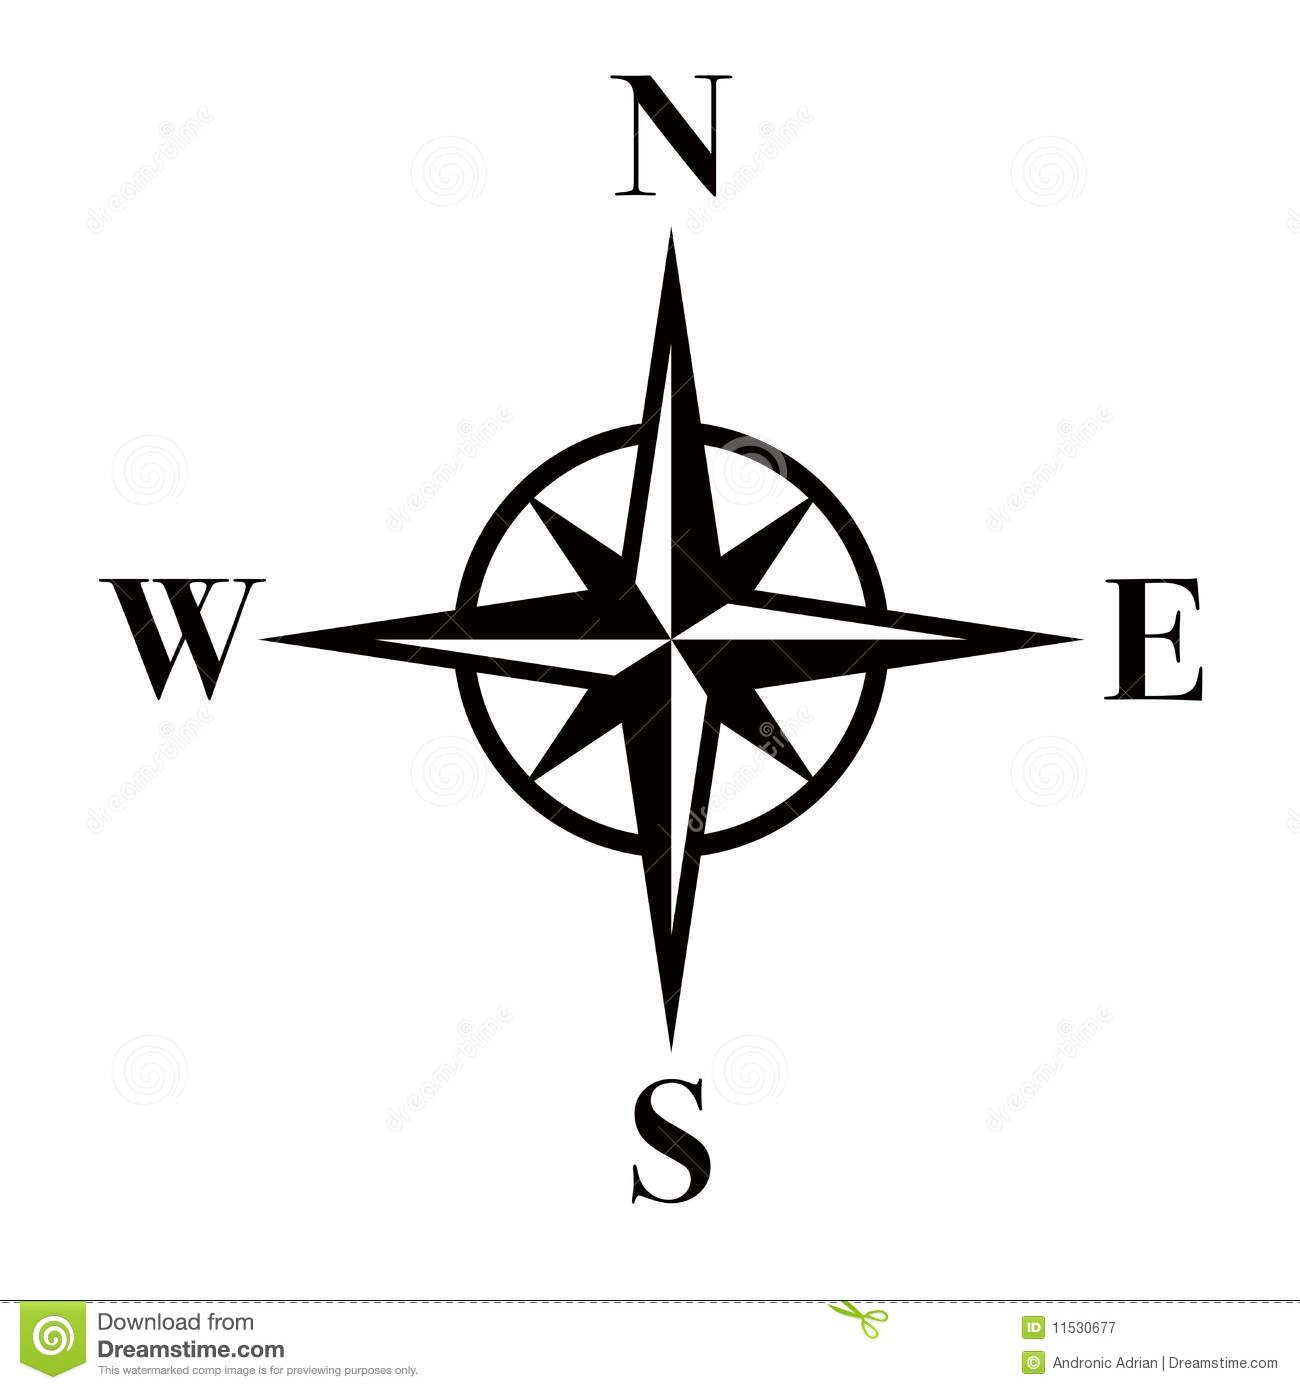 Compass eps download from over 38 million high quality stock photos images